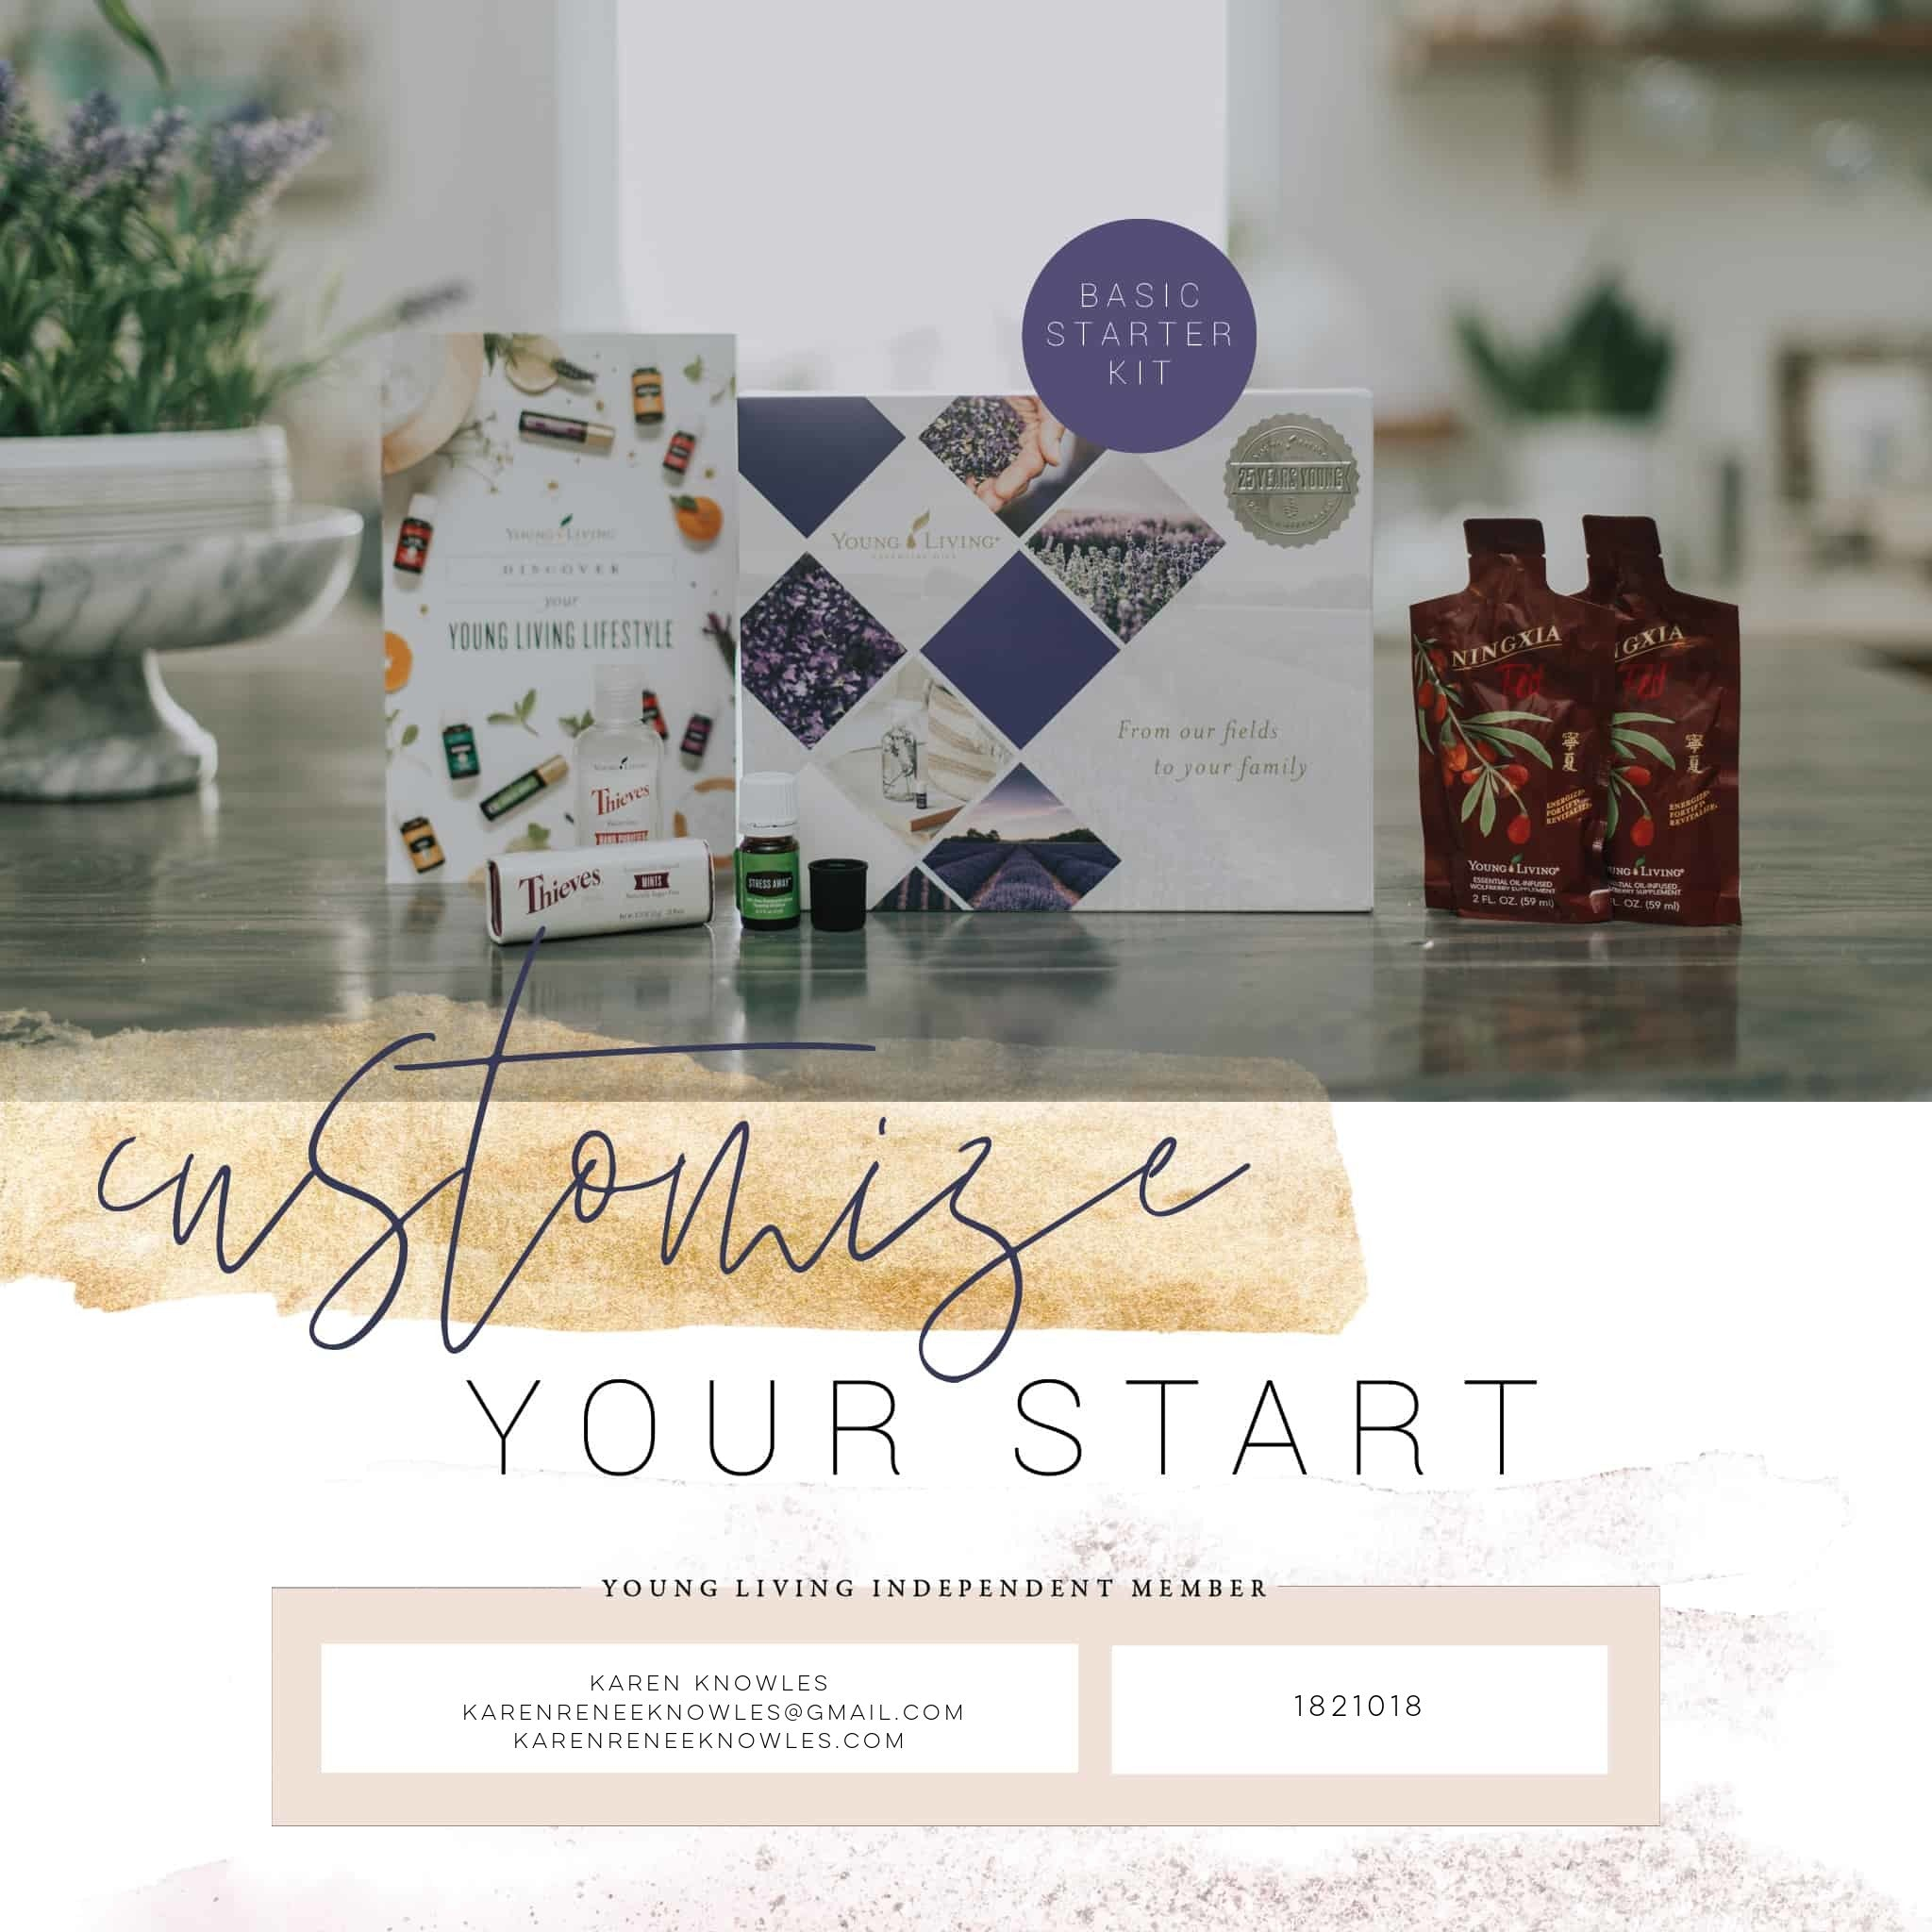 Young Living Basic Starter Kit Membership Options to Customize Your Experience